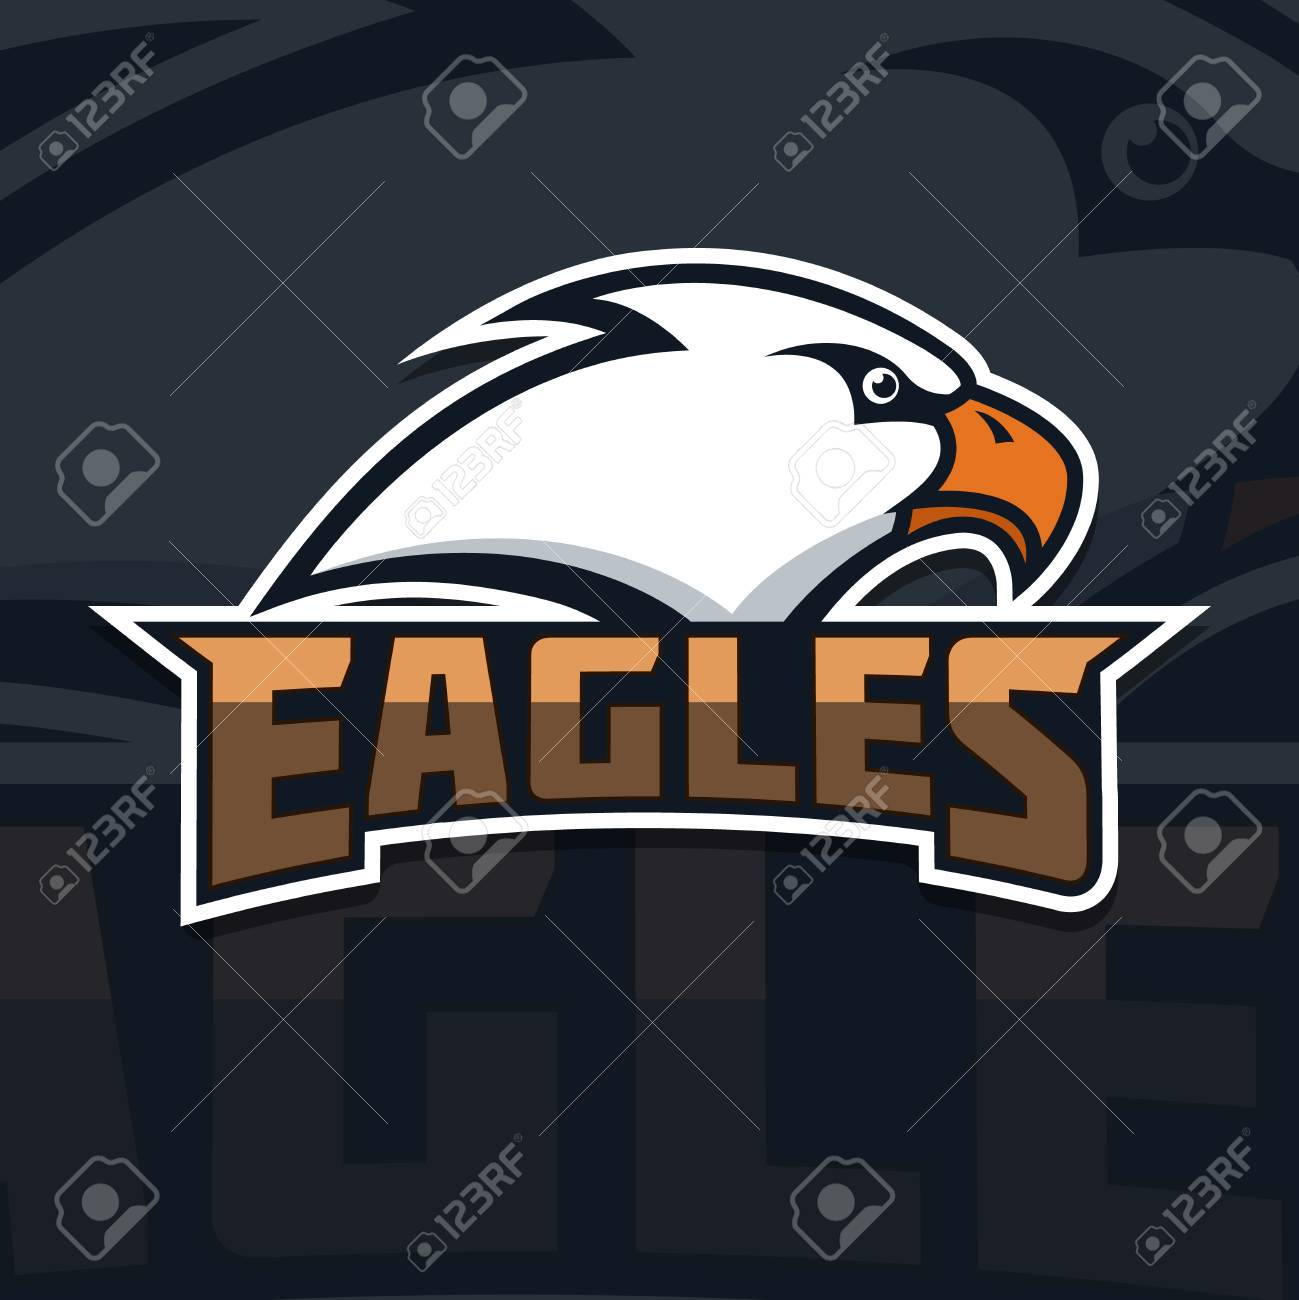 Eagles  emblem template with eagle head  sport team mascot  Vector